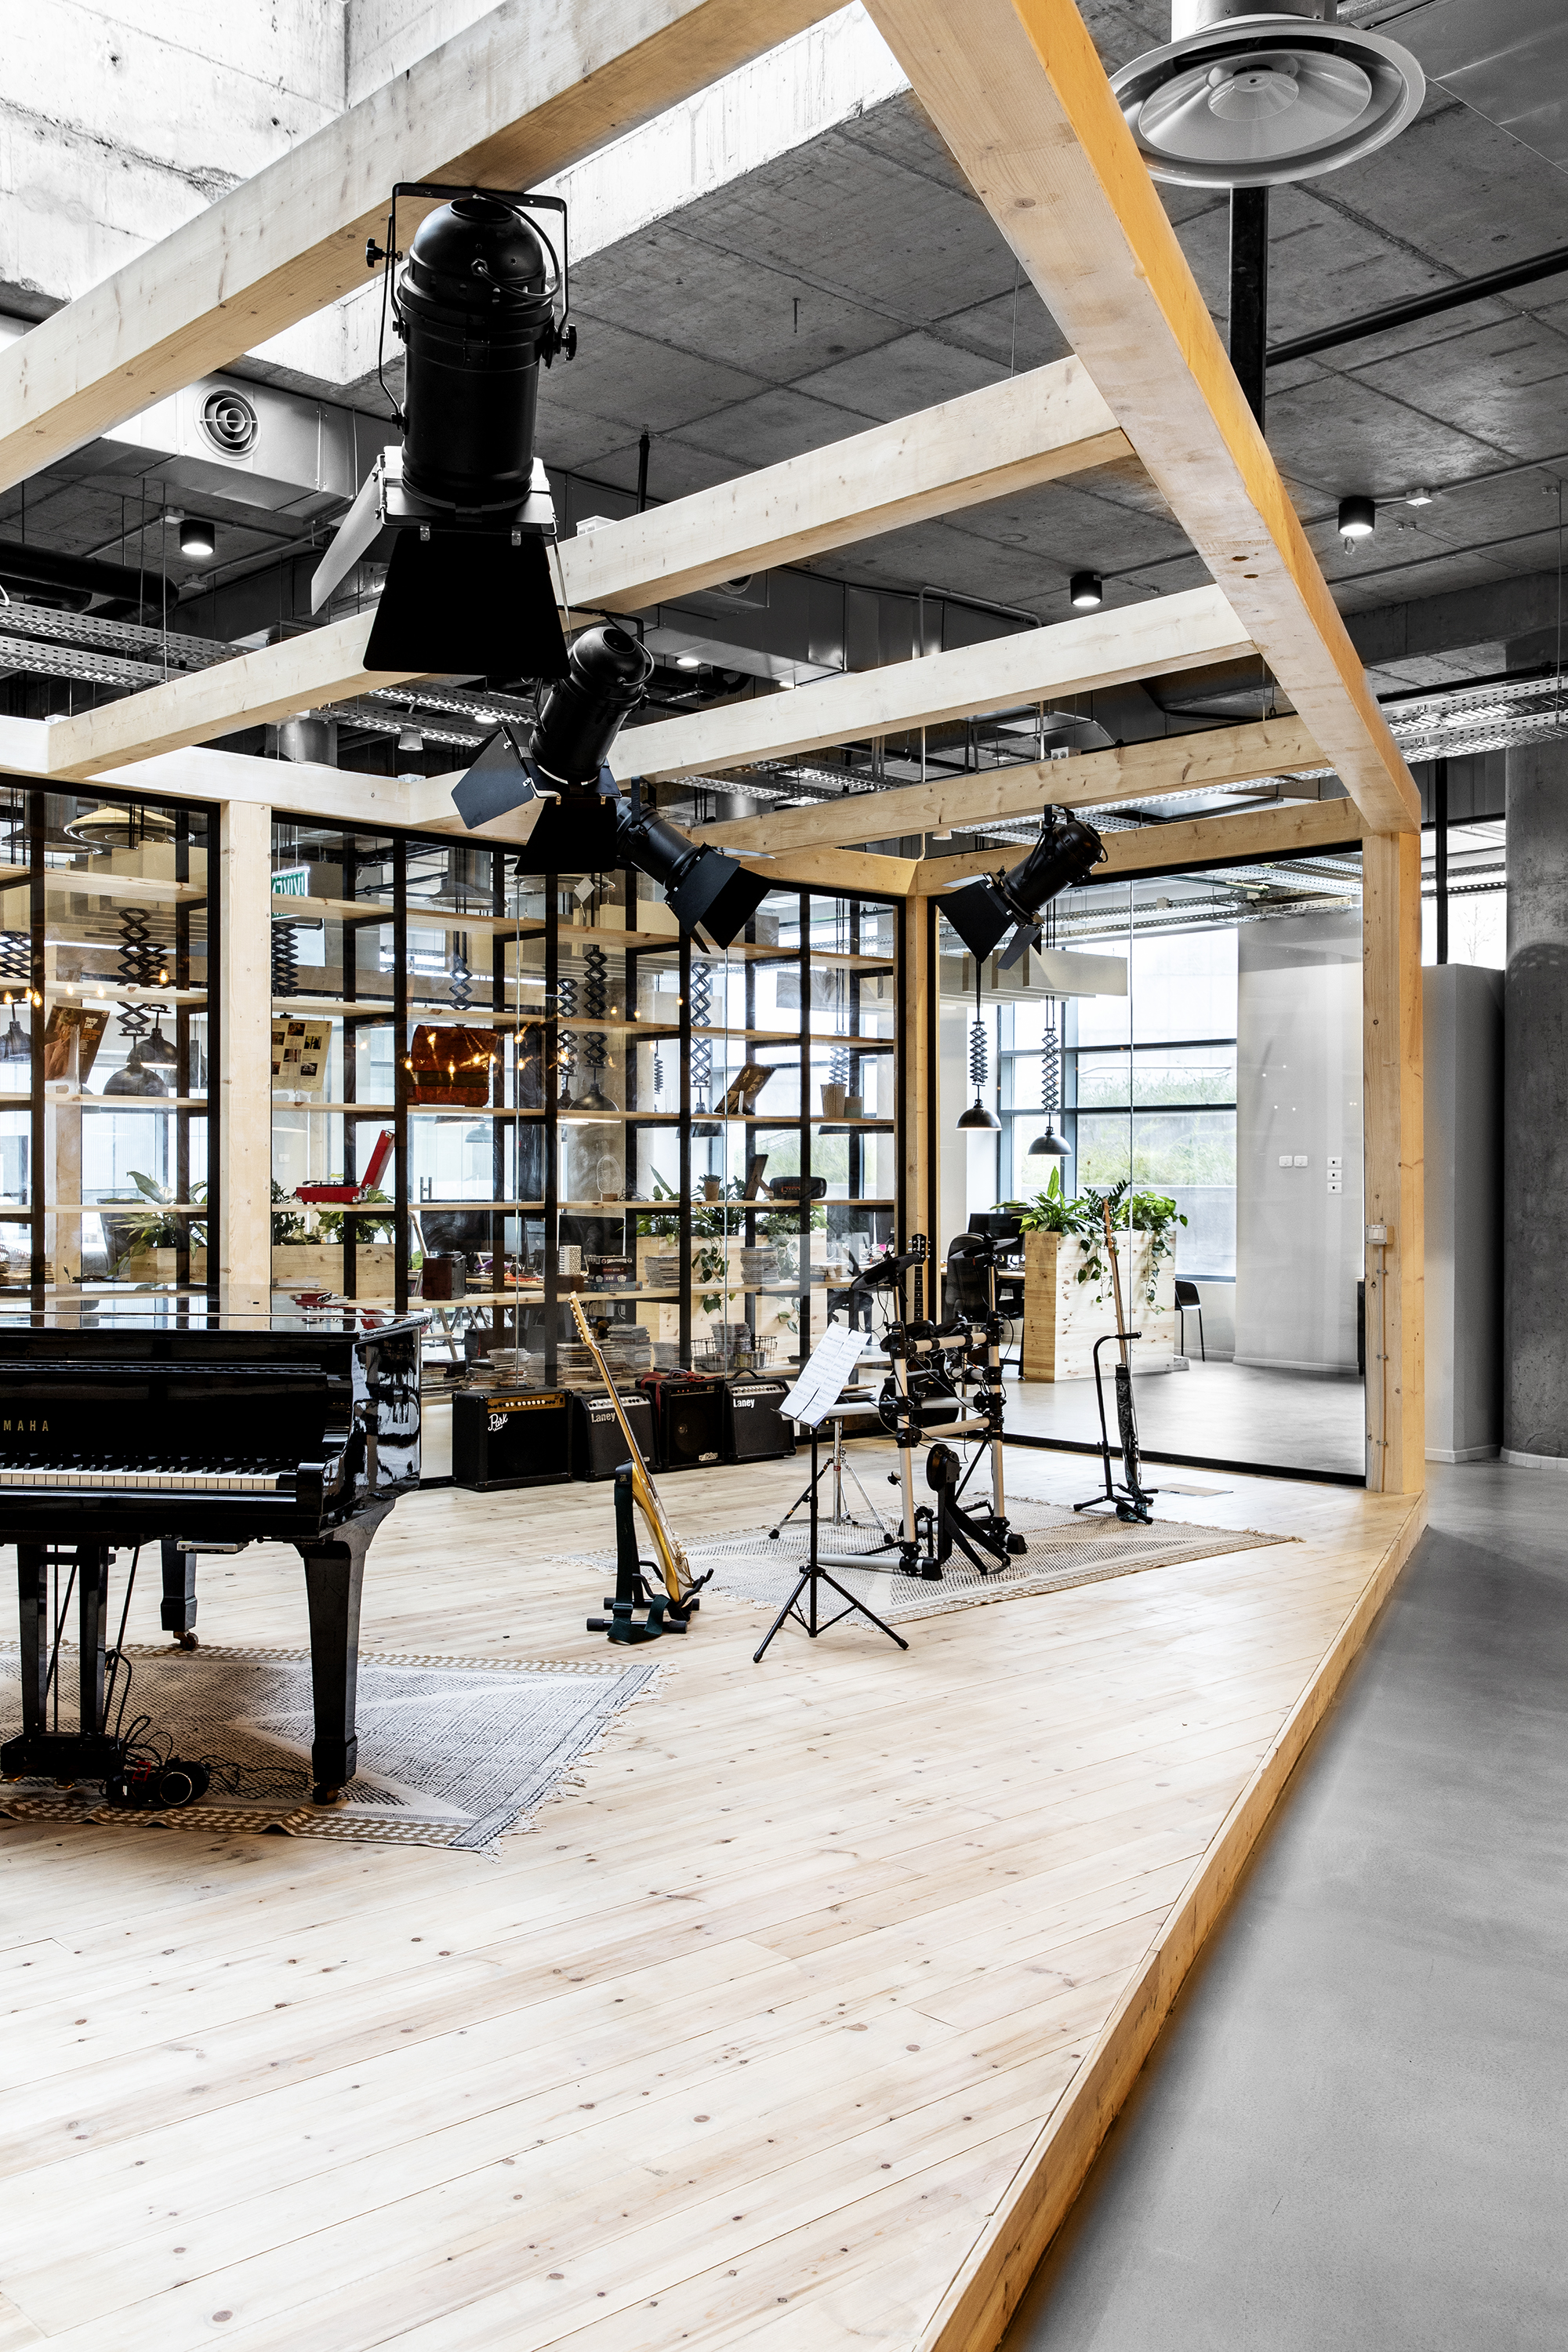 020_סטודיו רואי דוד - ROY DAVID ARCHITECTURE - JOYTUNES OFFICES.jpg